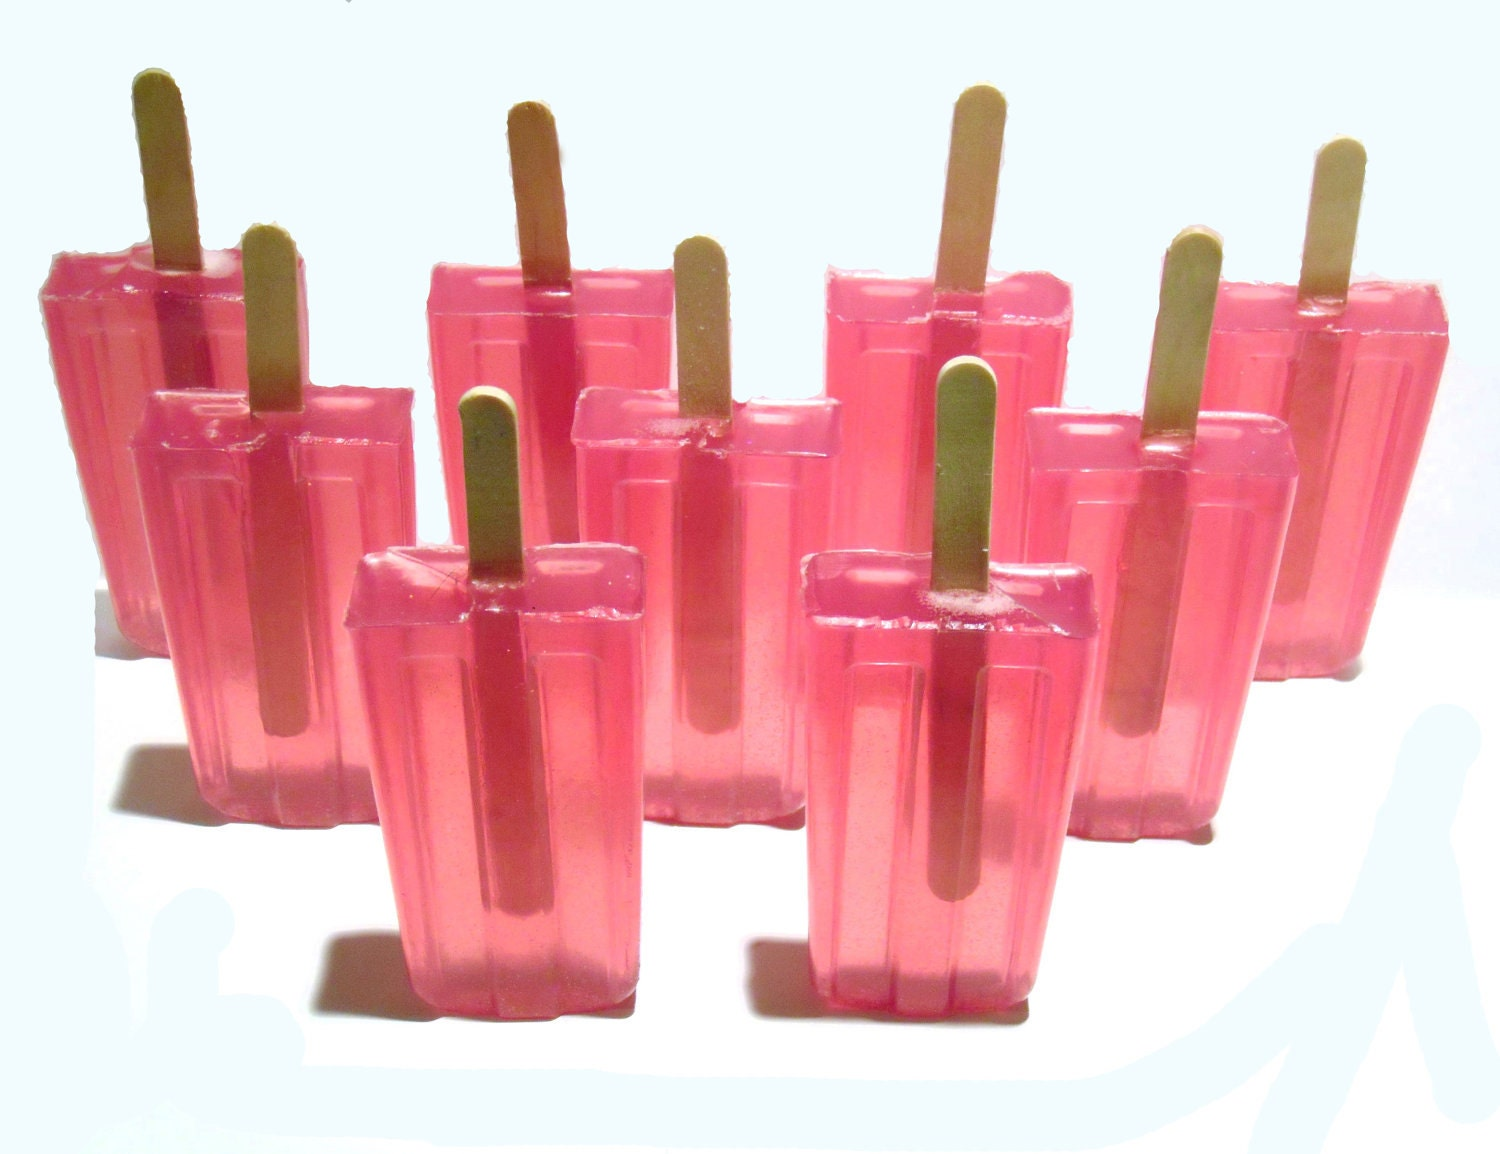 Popsicle Soap Watermelon Party Favors Wedding Favors Bridal Shower Favors Baby Shower Favors Birthday Party Favors - SunKidGifts